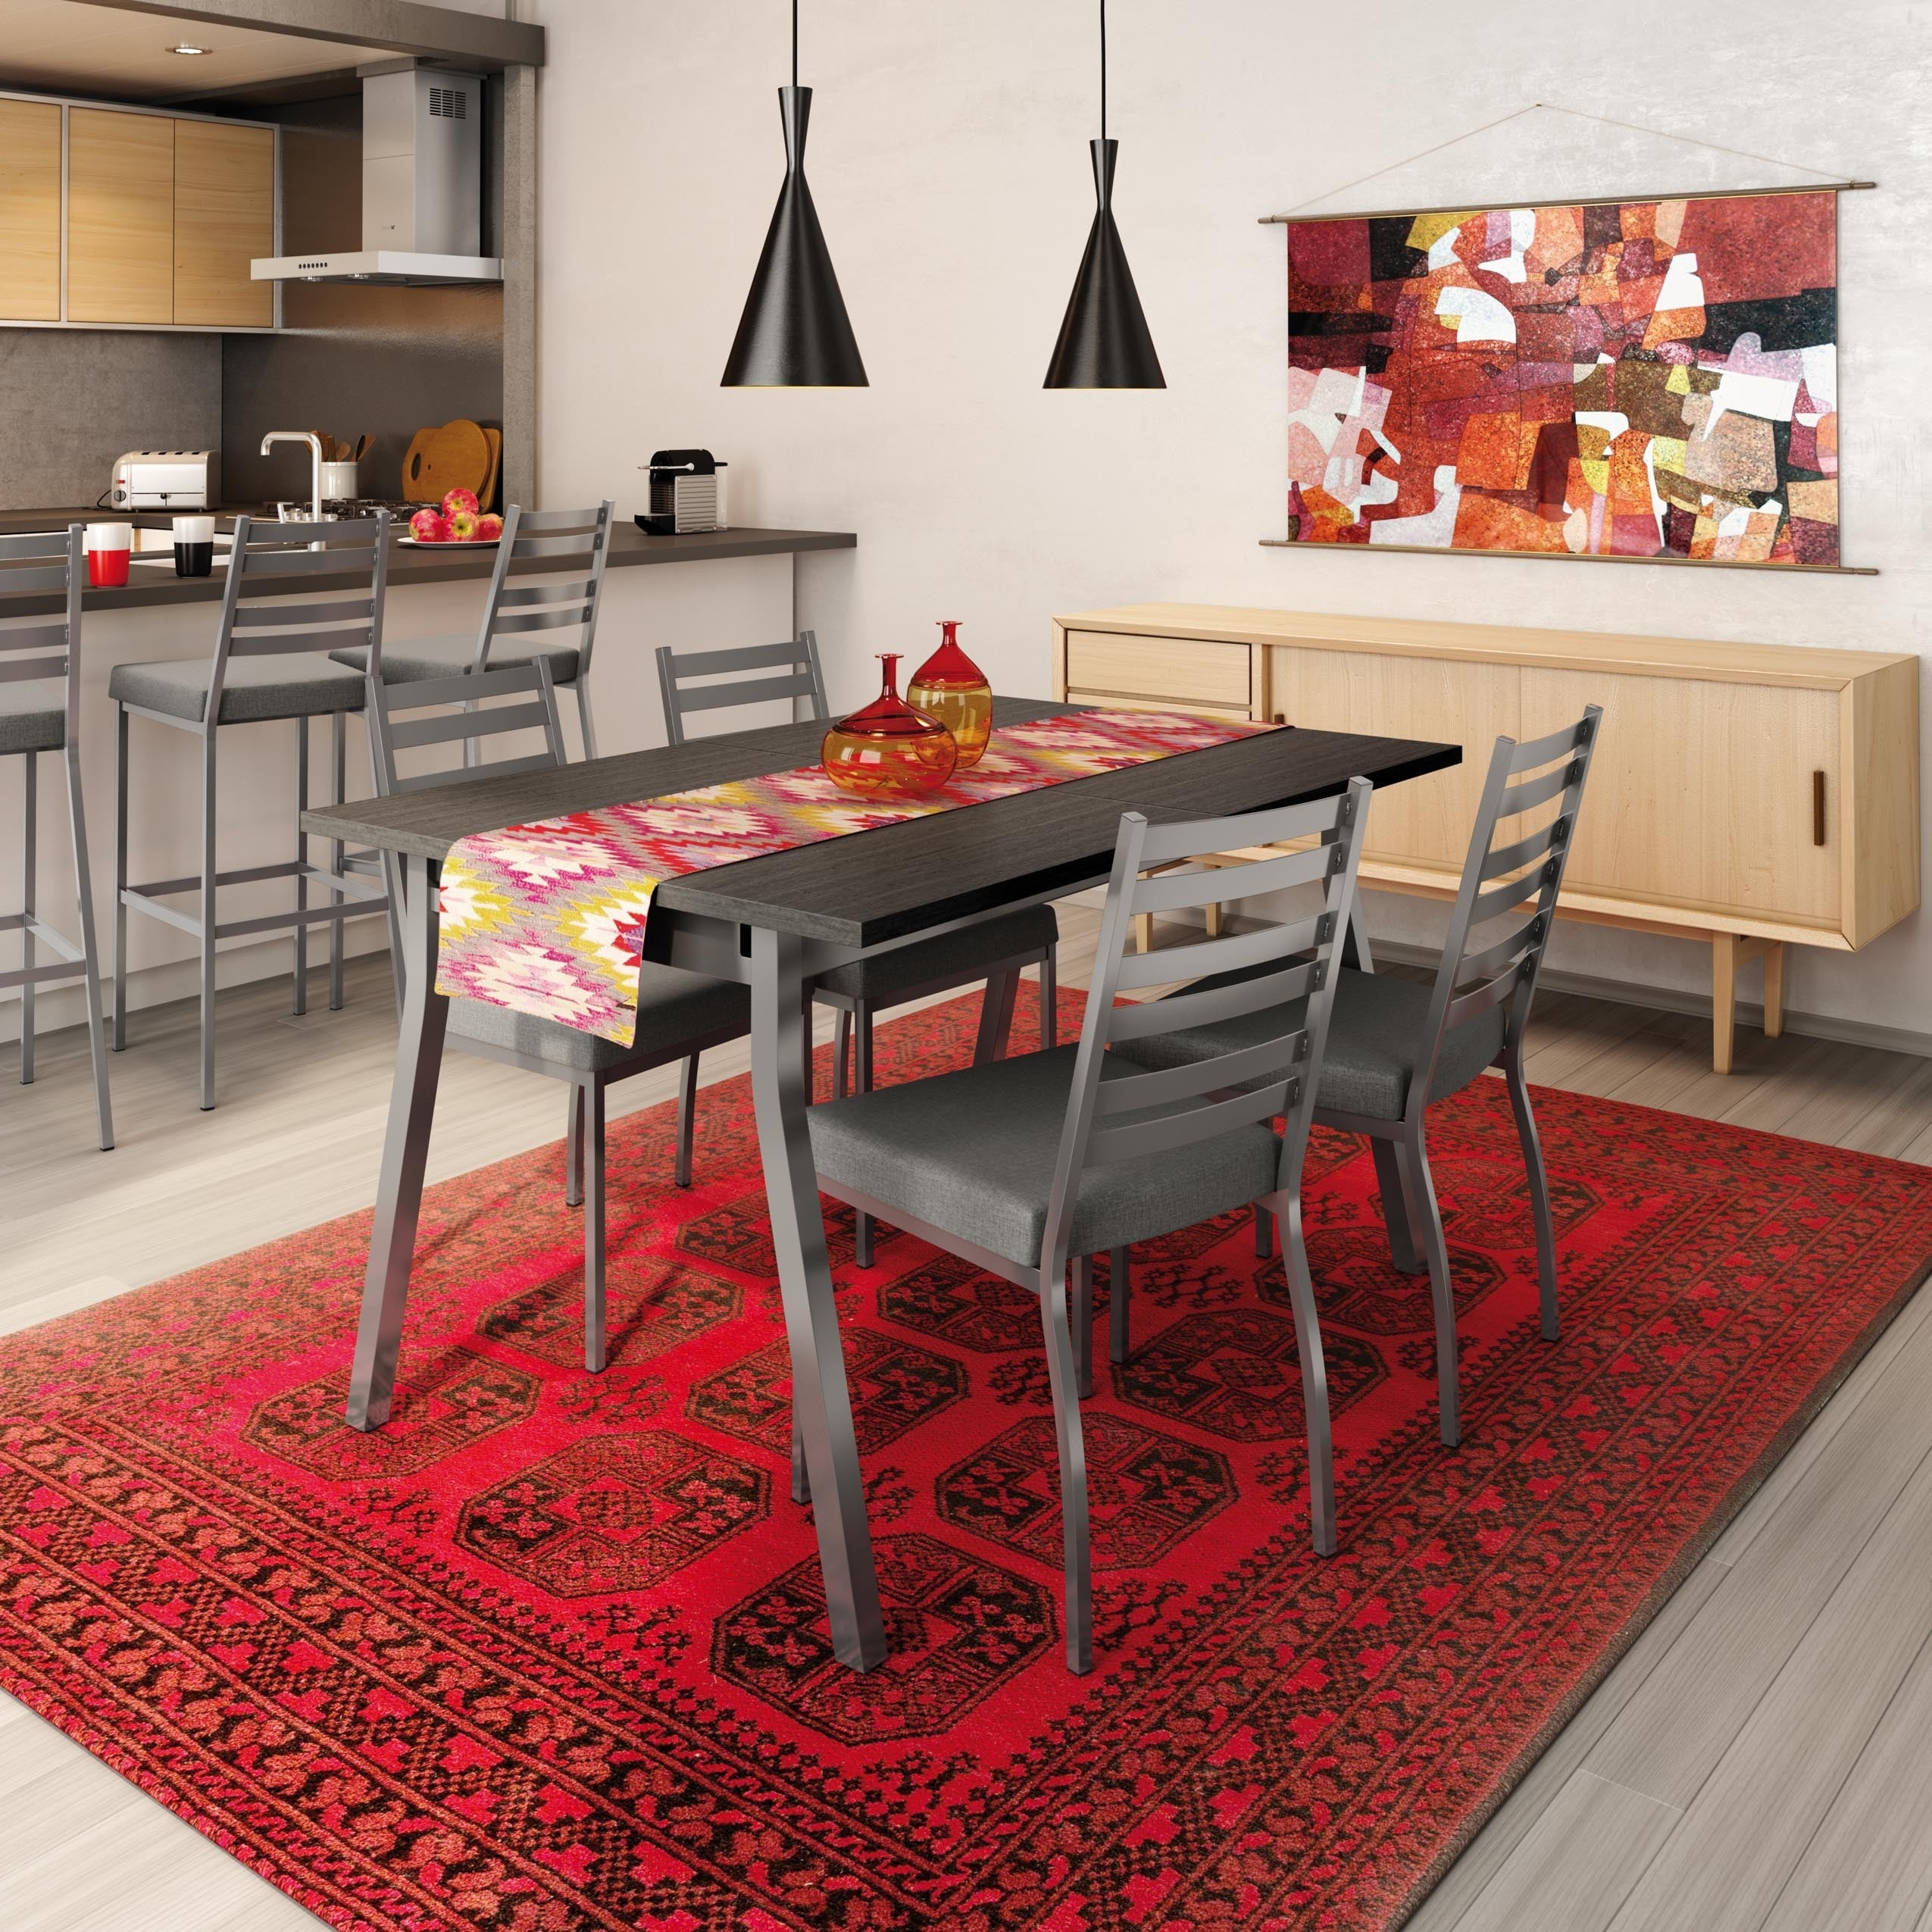 AIMSCO/DELTA HI-TECH Stage Metal Chairs and Annex Extenda...